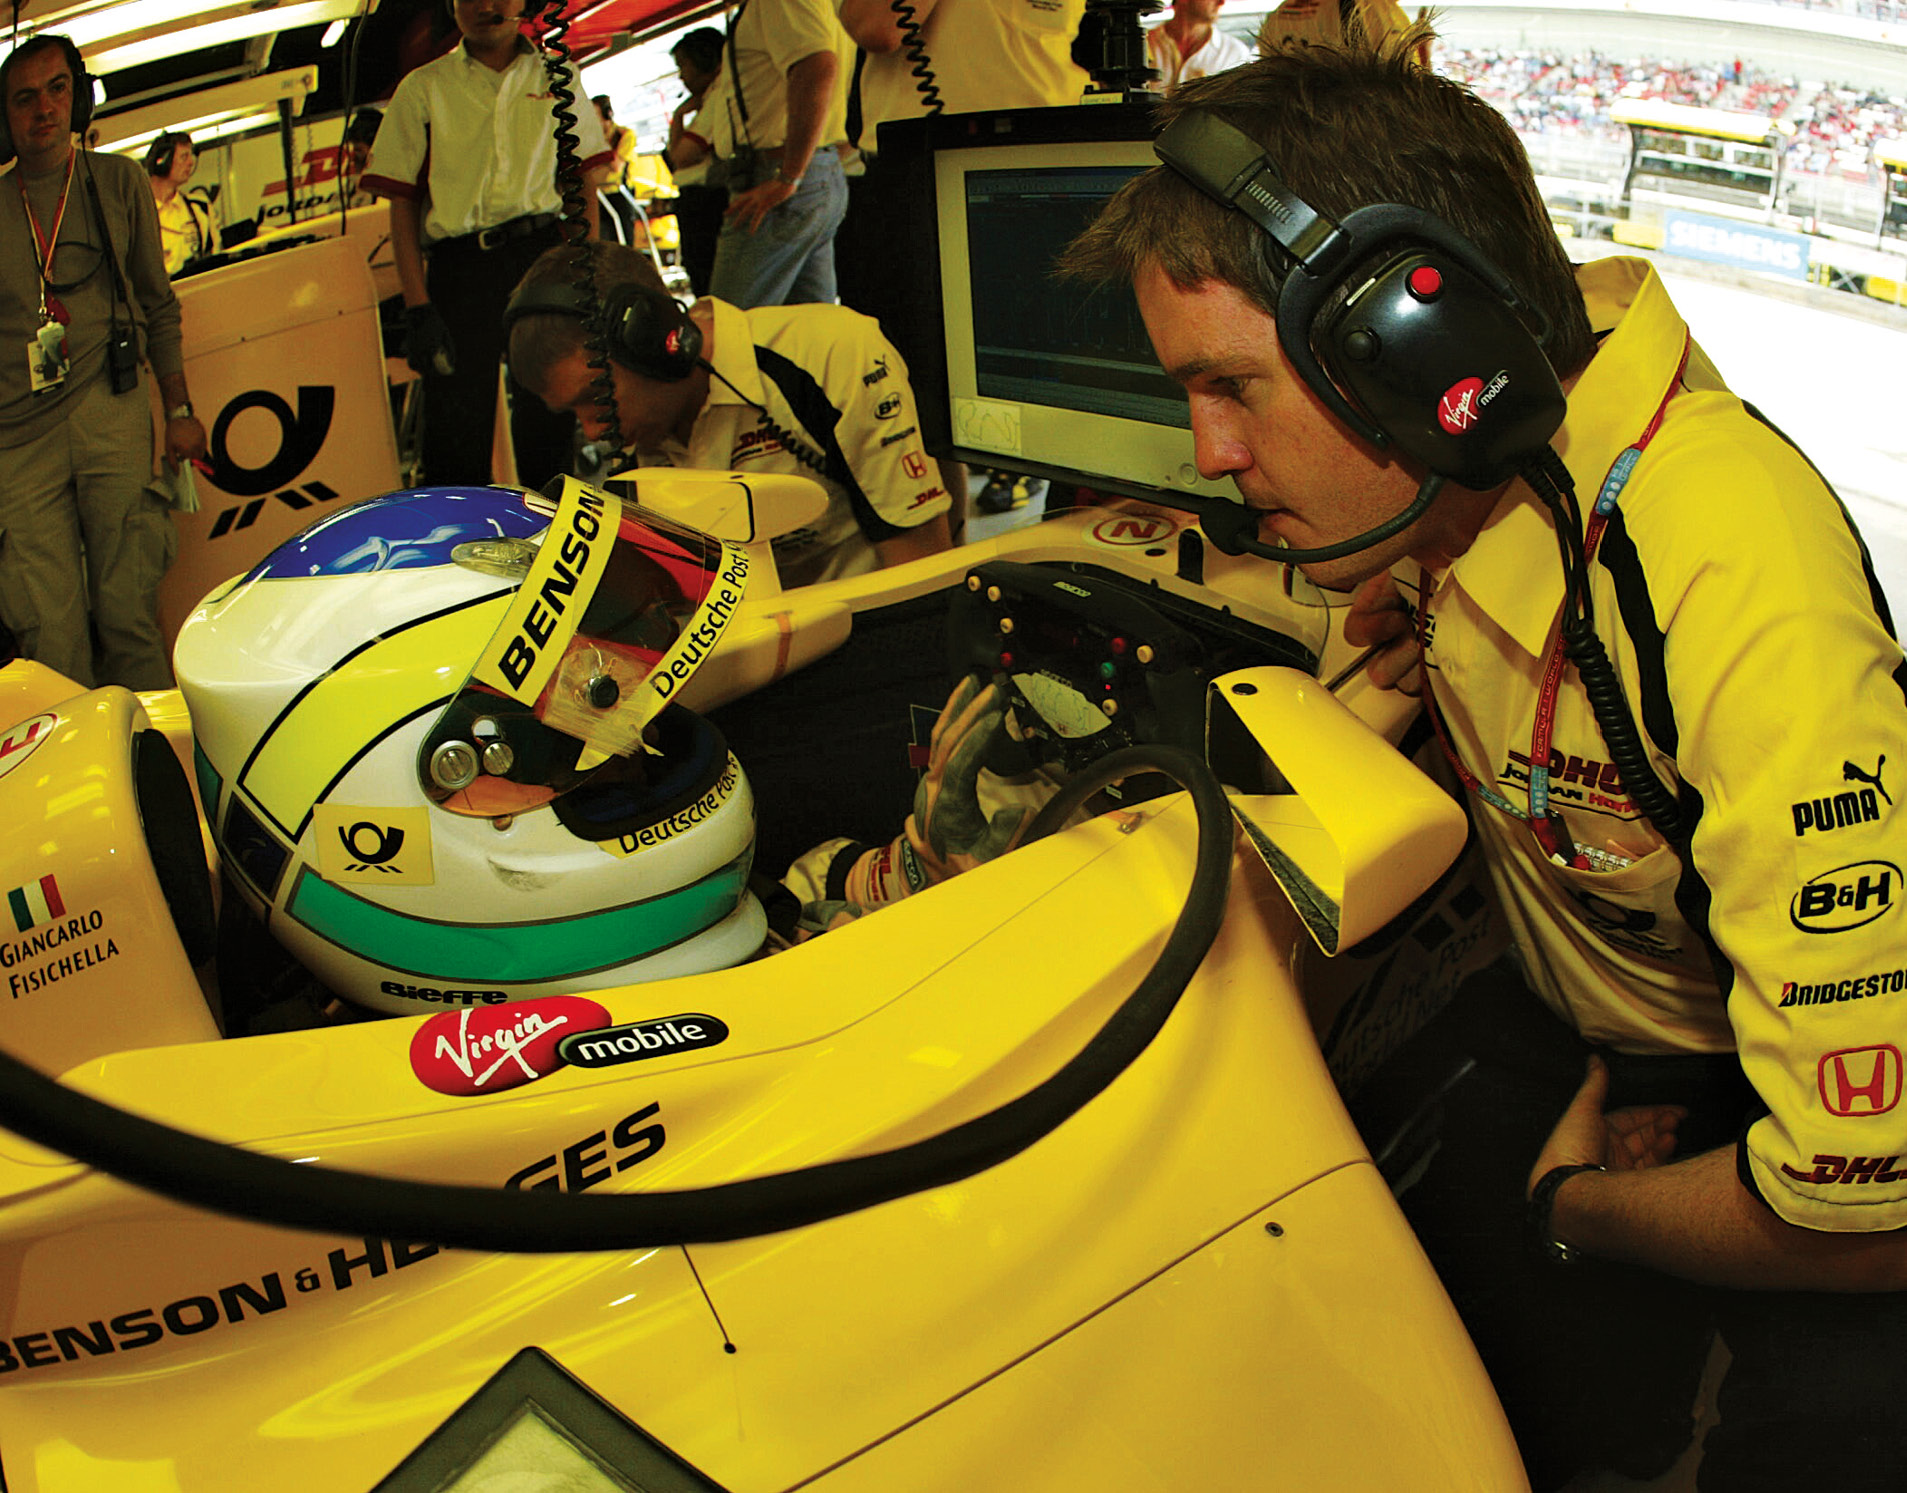 Smedley and Giancarlo Fisichella worked together at Jordan in 2002-03